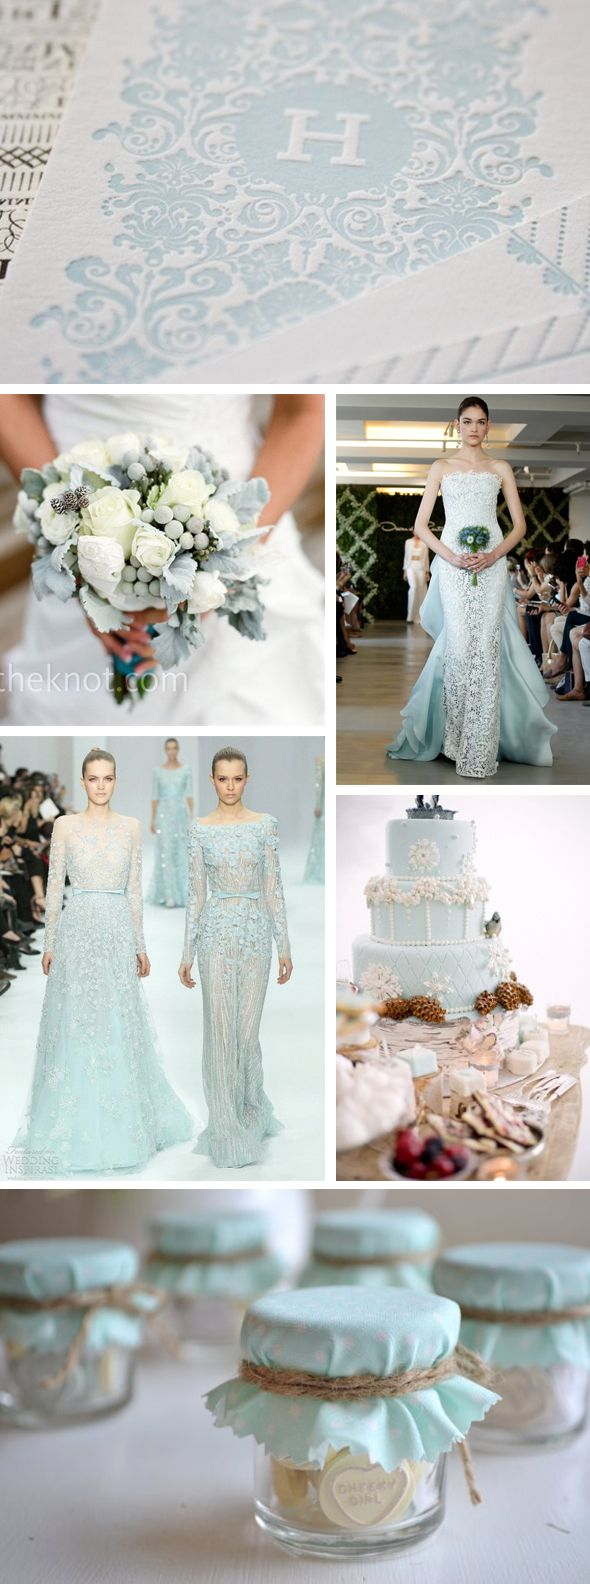 Ice Blue Winter Weddings | The Destination Wedding Blog - Jet Fete ...